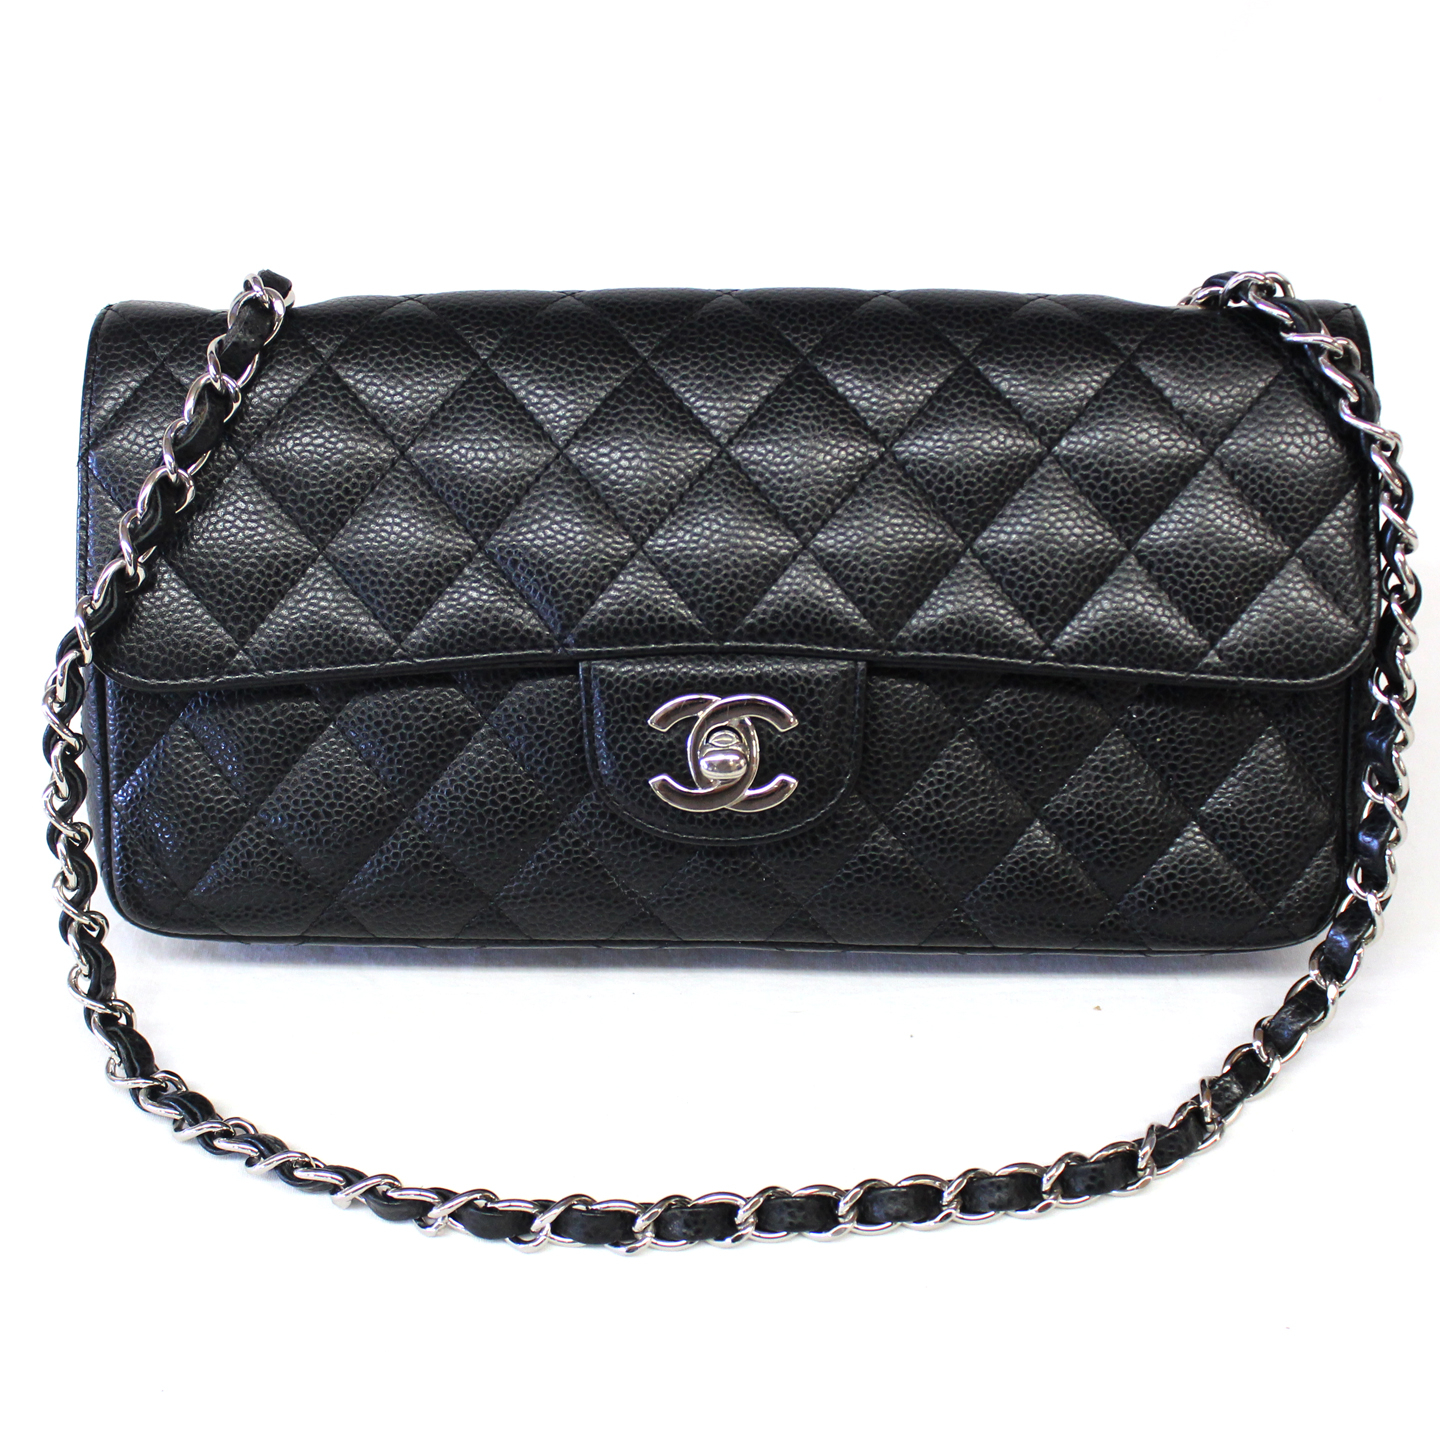 Chanel Black Caviar Leather Classic East West Flap Quilted